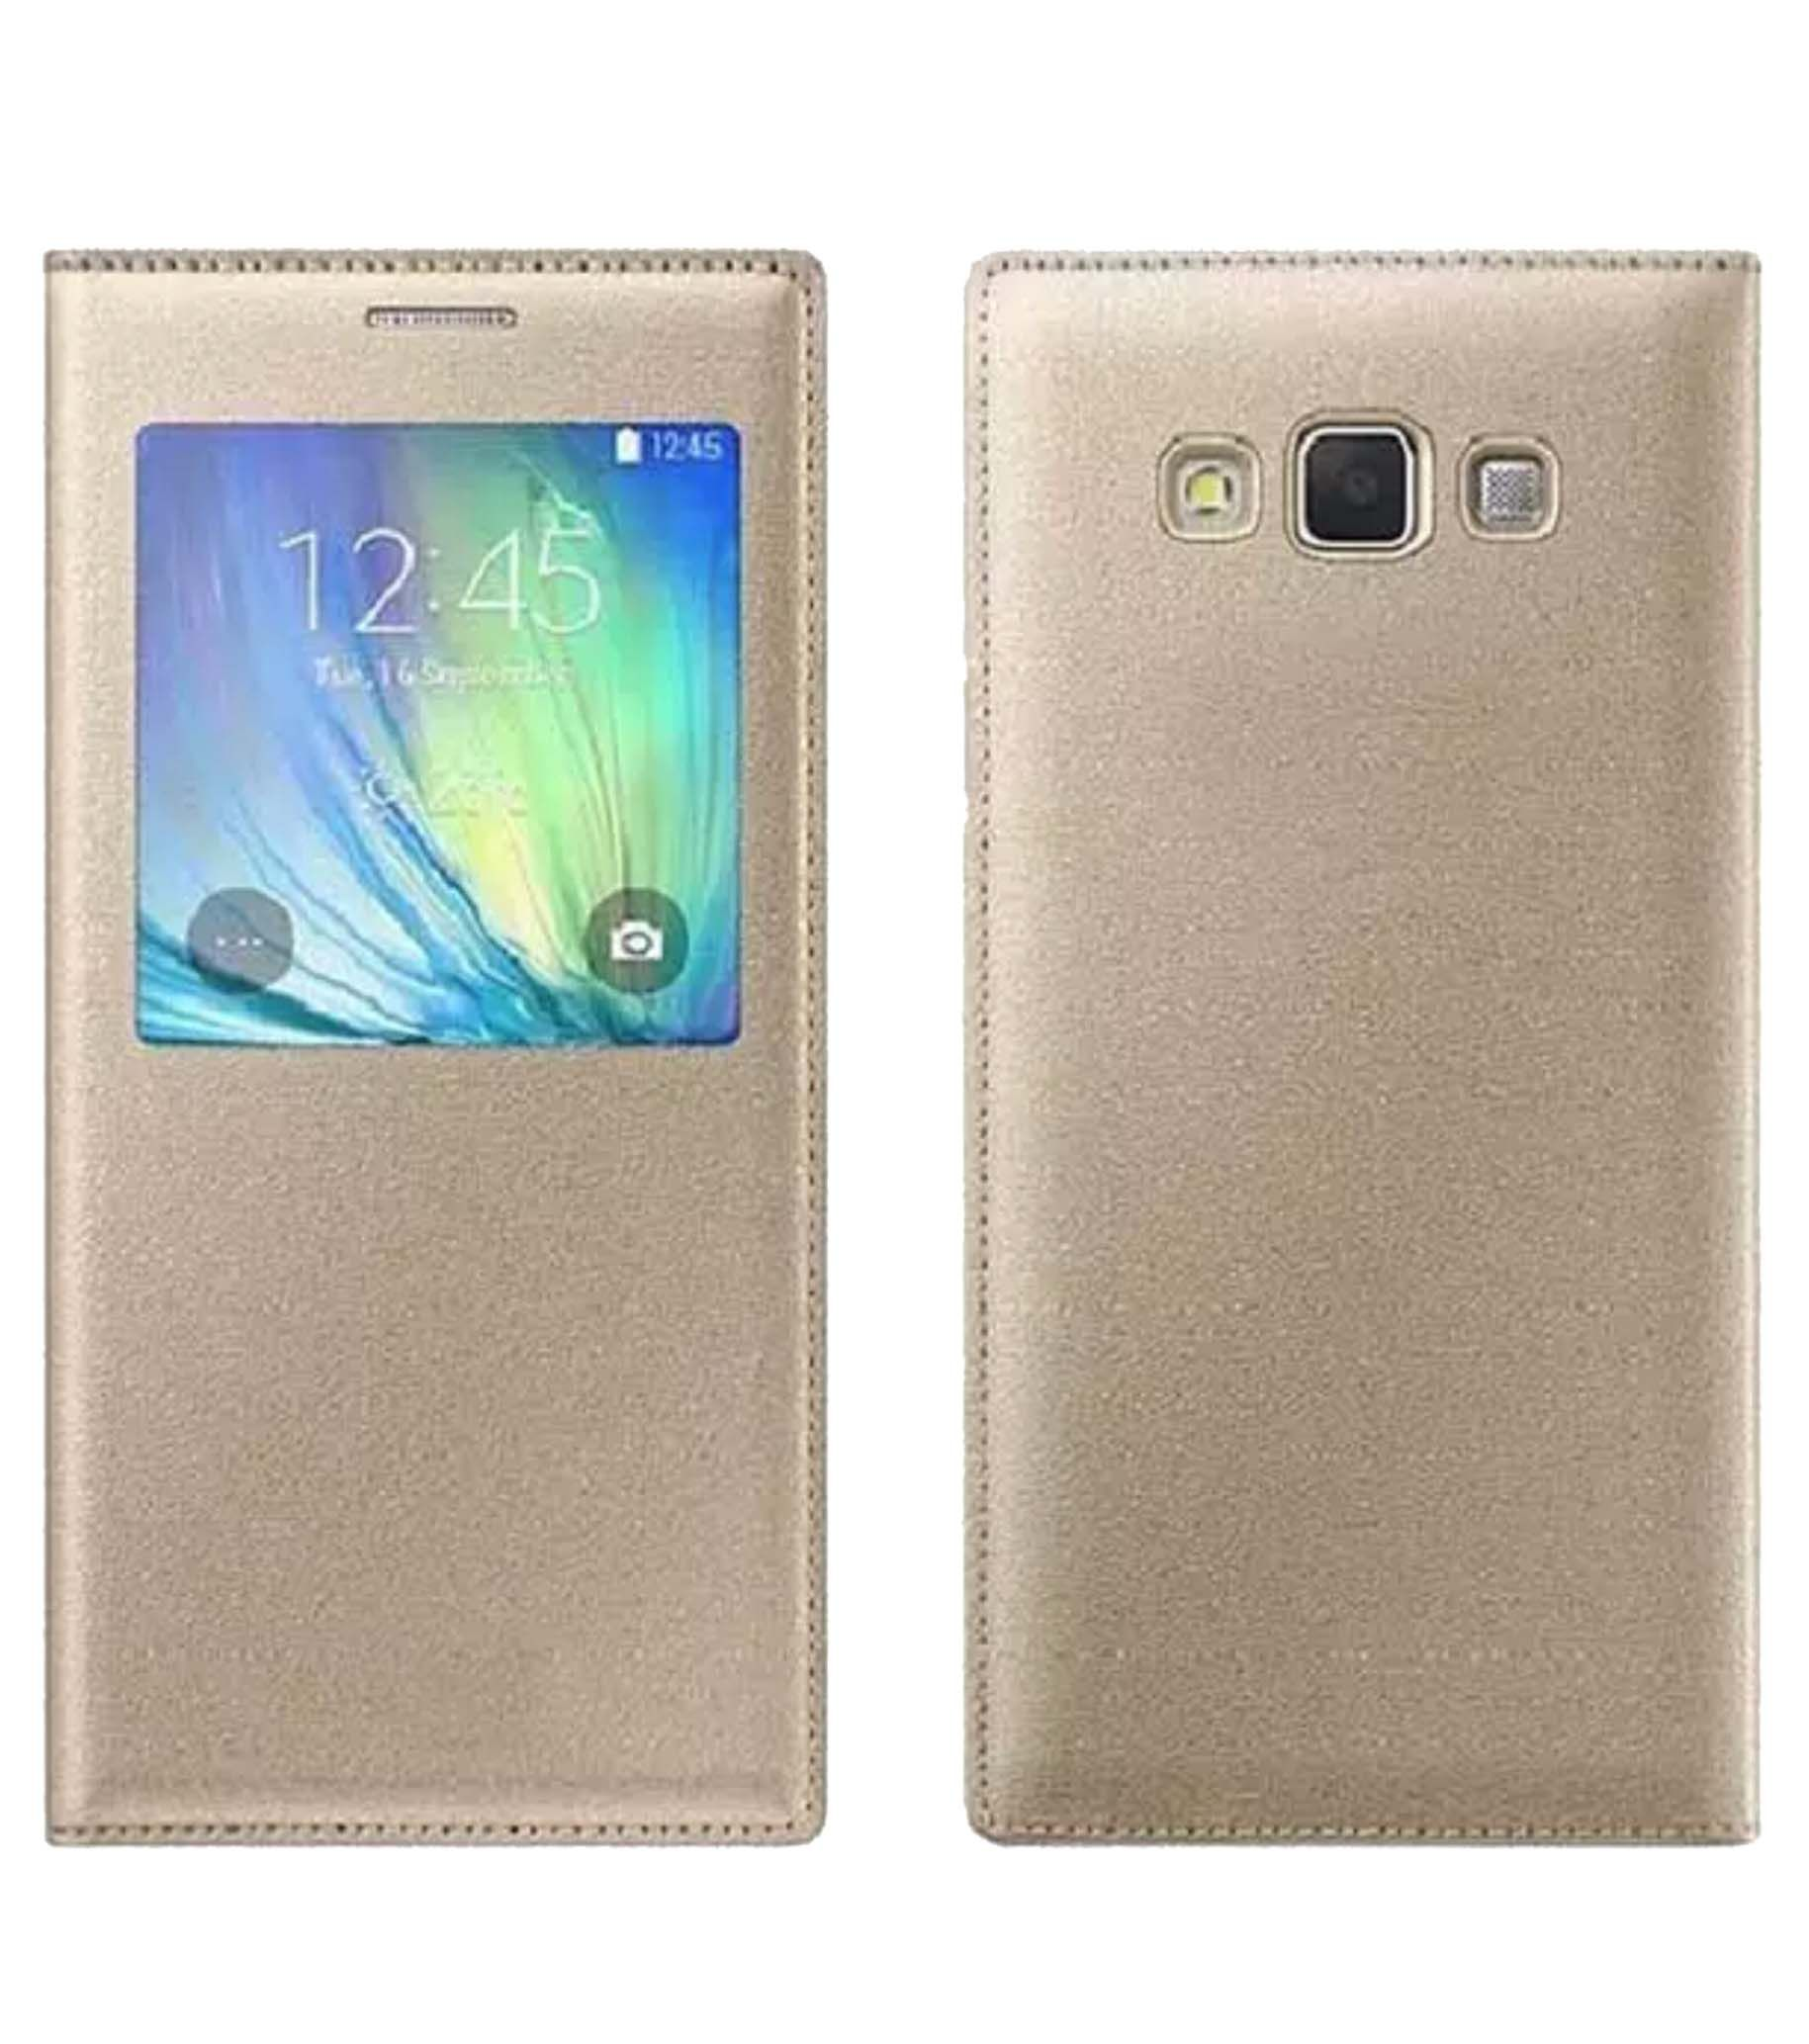 Samsung Galaxy J5 Flip Cover by Sedoka - Golden